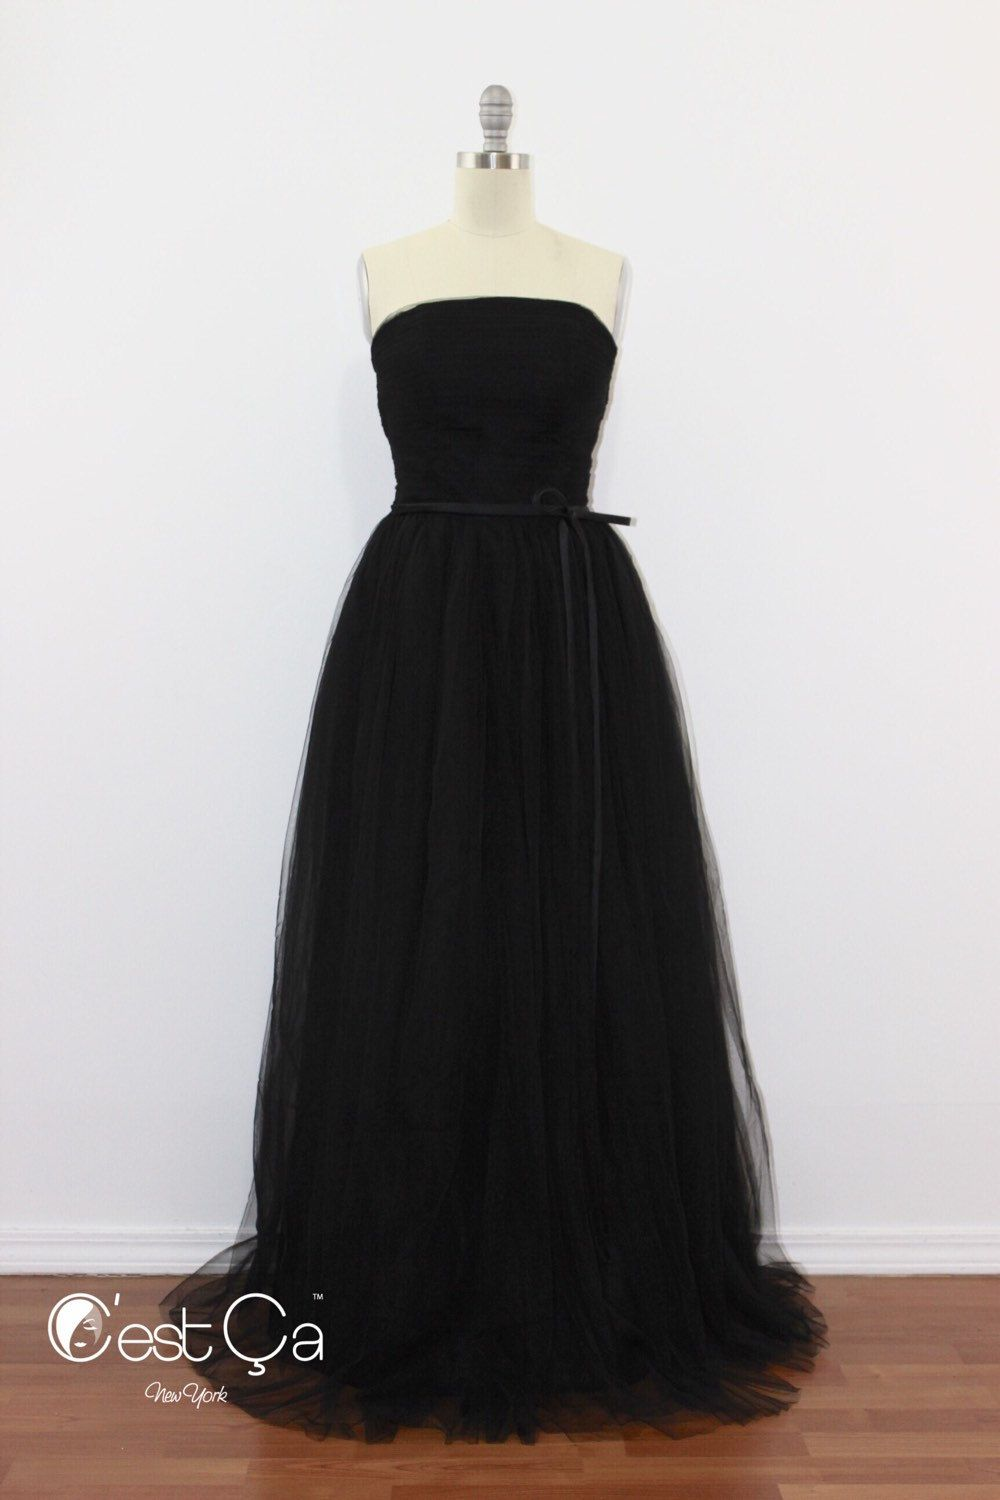 Audrey bridal gown wedding dress maxi tulle dress in black